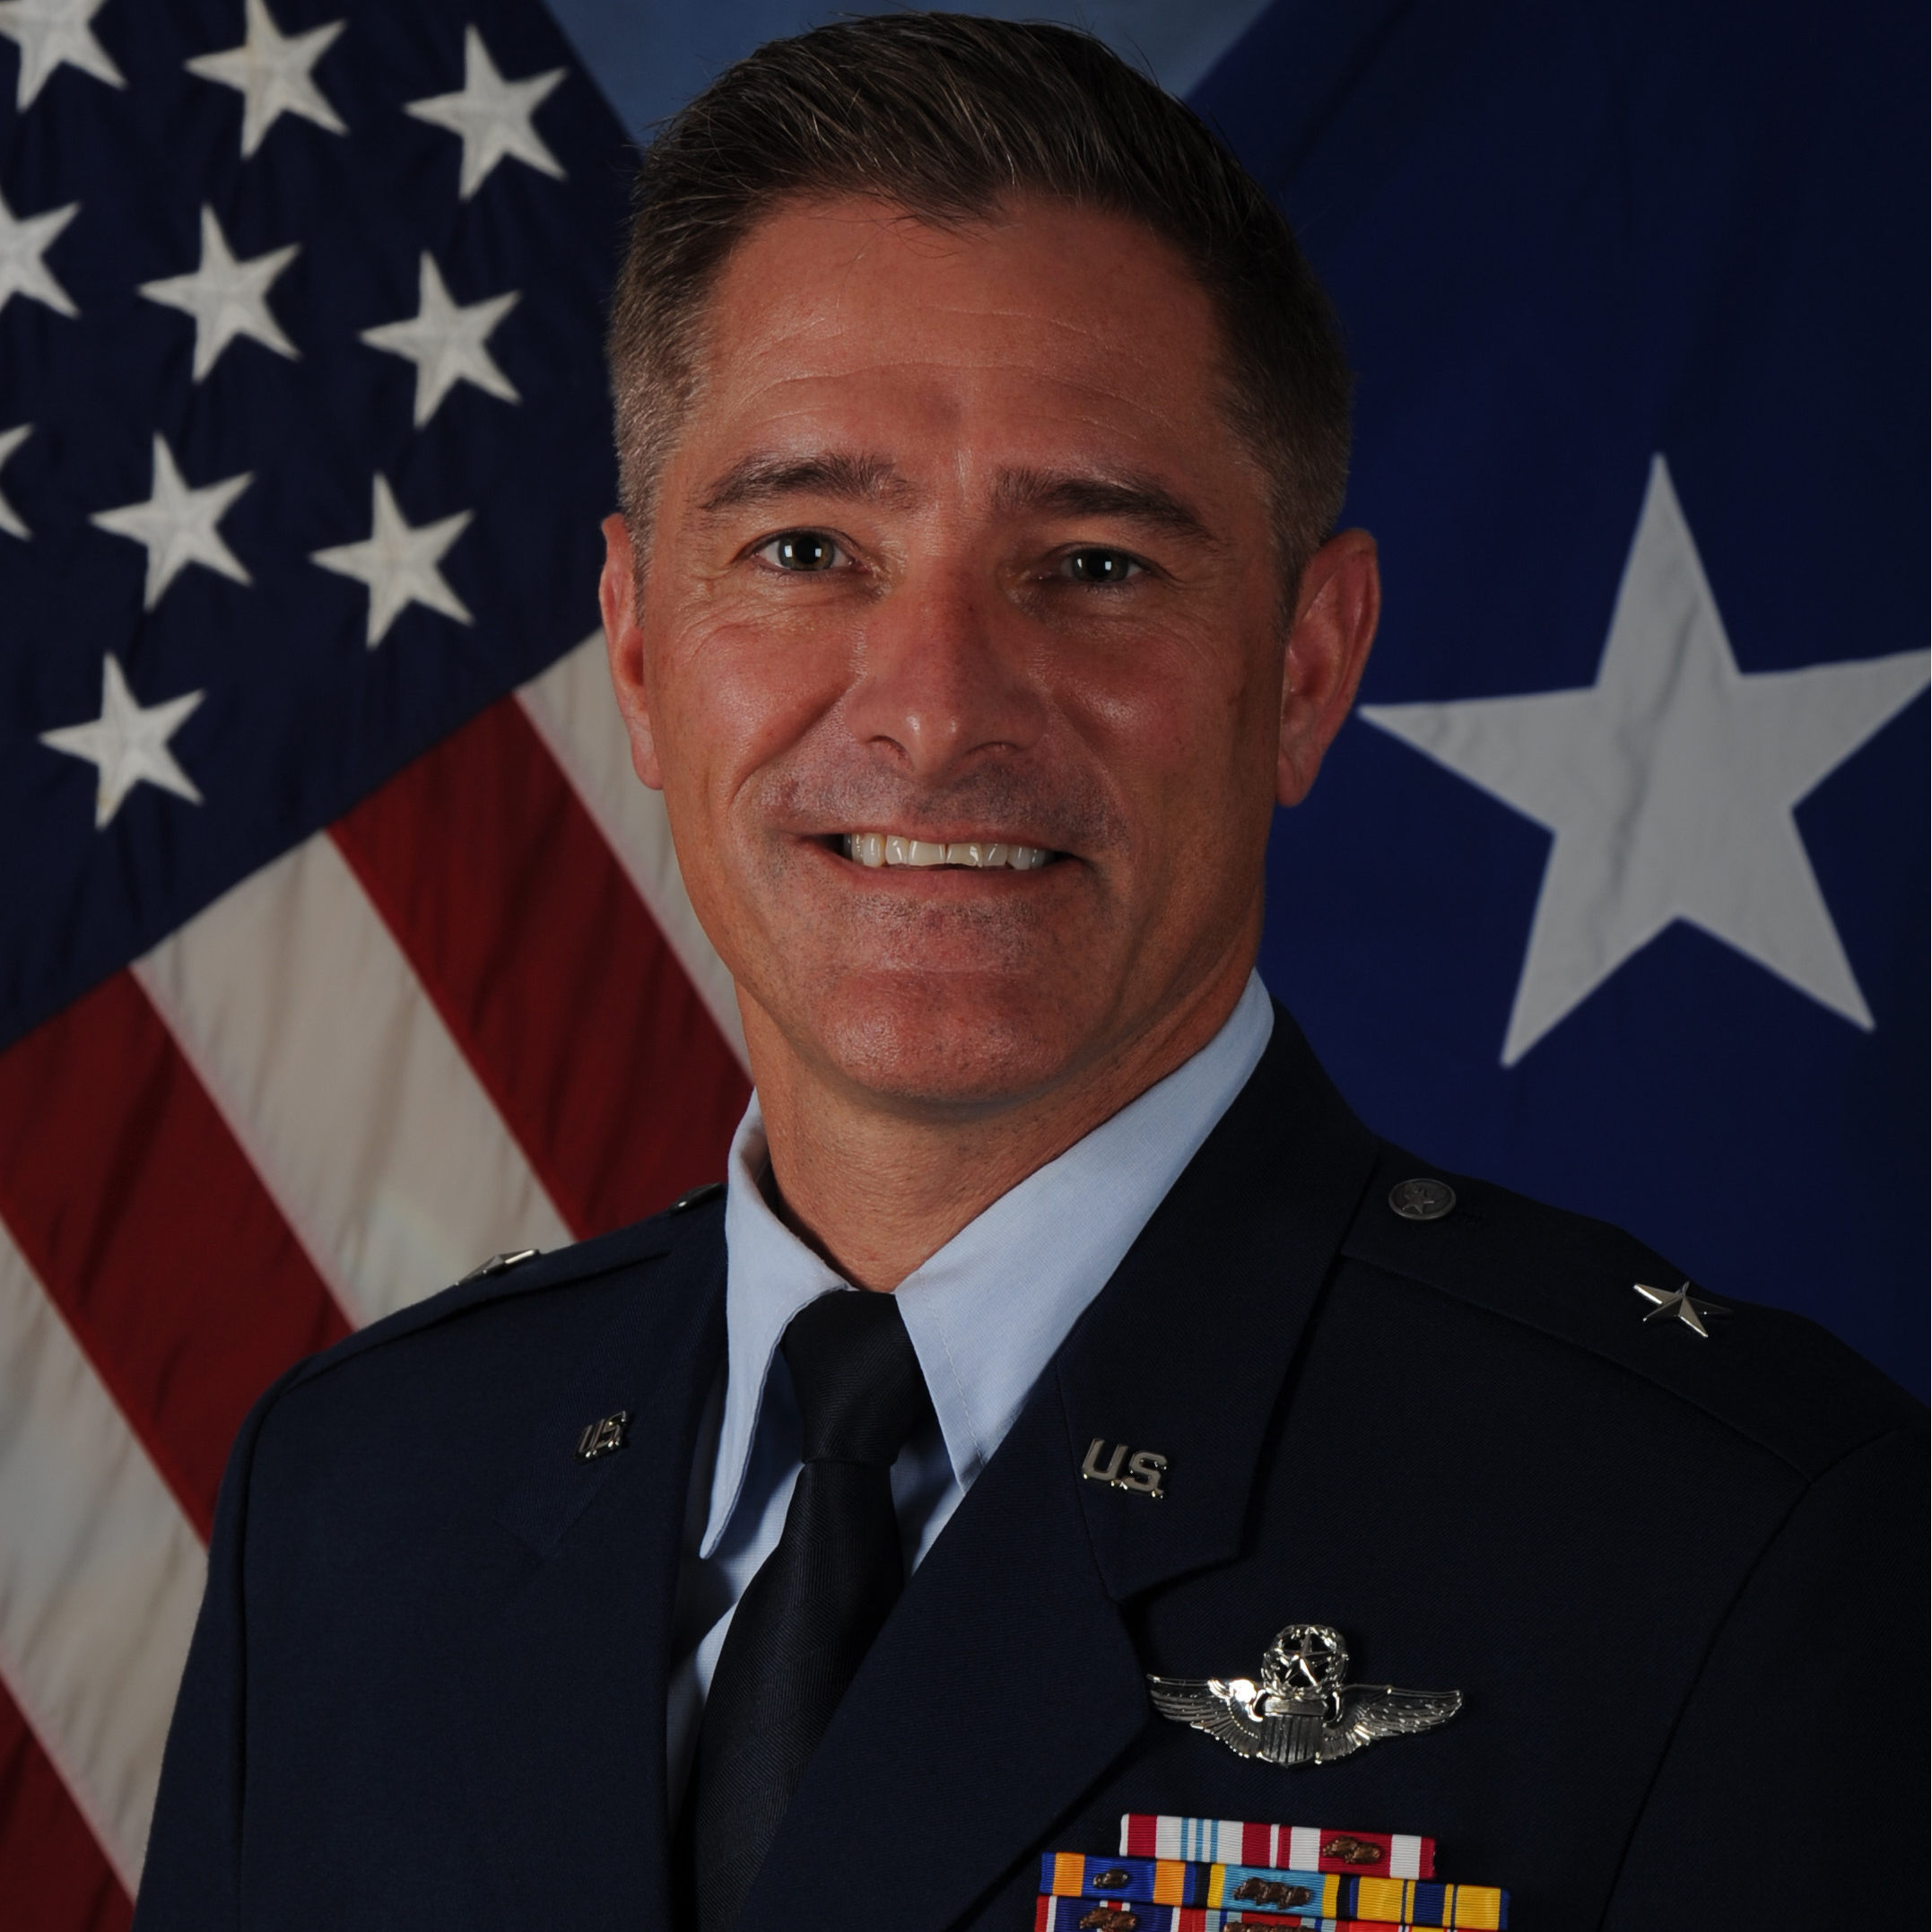 Brigadier General William Whittenberger, Jr, Mobilization Assistant to the Director of Strategic Plans, Programs & Requirements at AFSOC, US Airforce